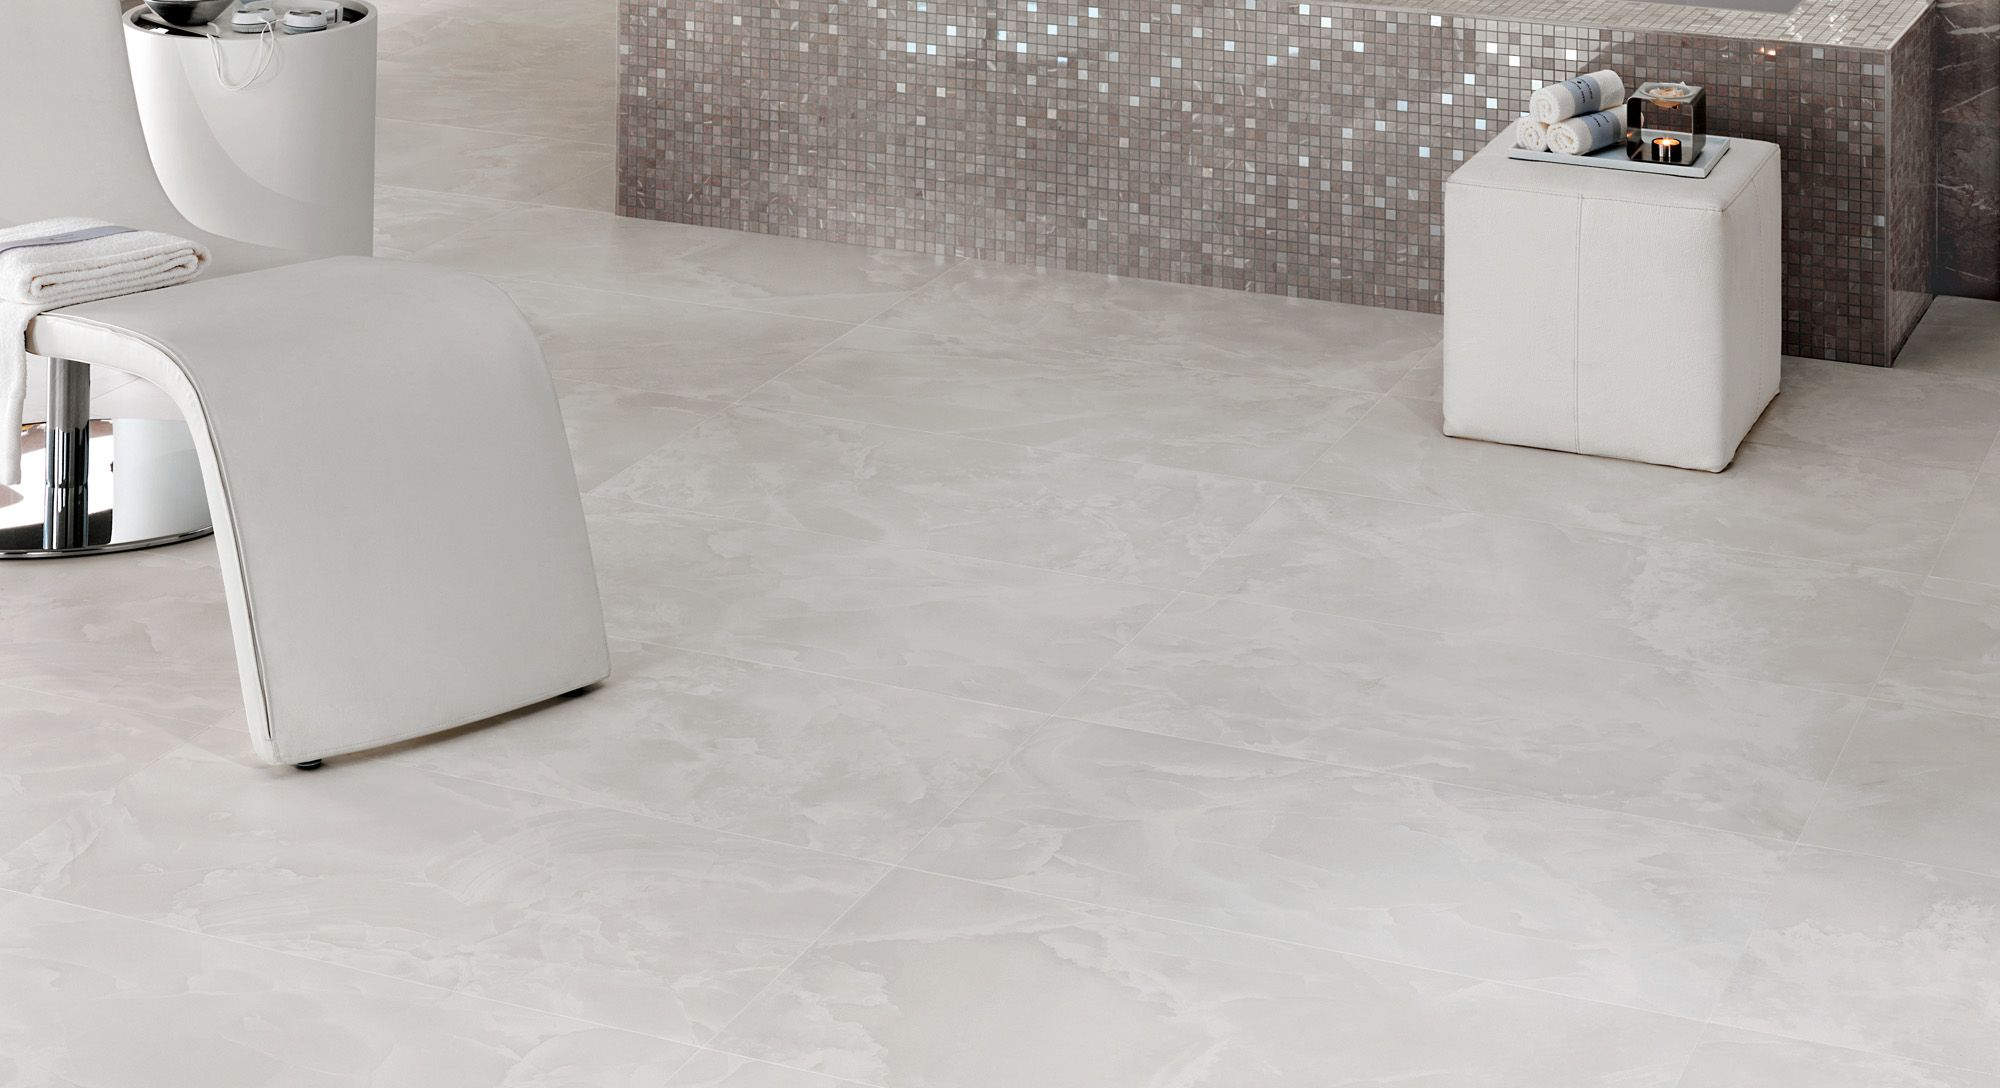 Minoli evolution marvel floor tiles evolution marvel onyx minoli evolution marvel floor tiles evolution marvel onyx moon 45 x 90 cm the matt finish of this marble look tile is suitable for design ven dailygadgetfo Image collections